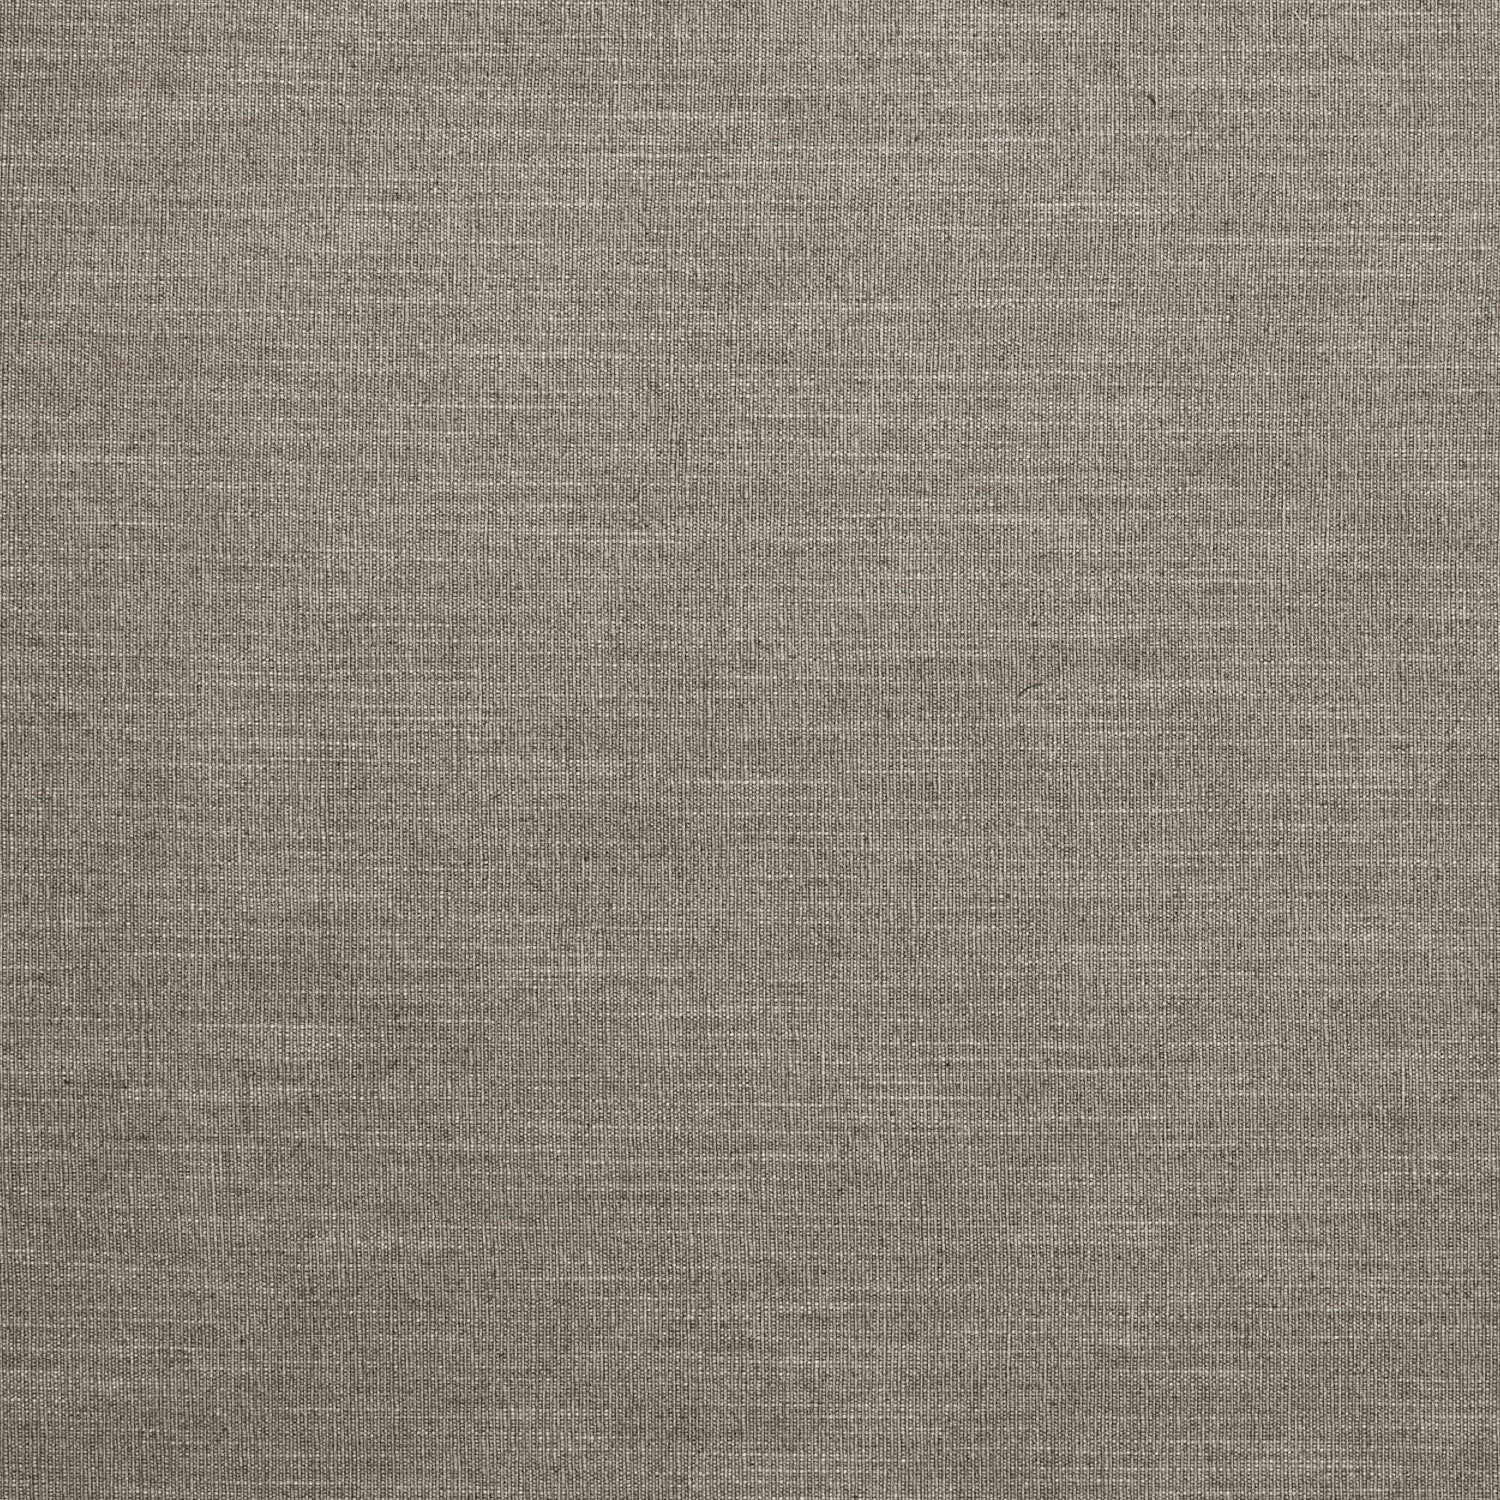 Rustic brown linen blend fabric suitable for curtains and upholstery